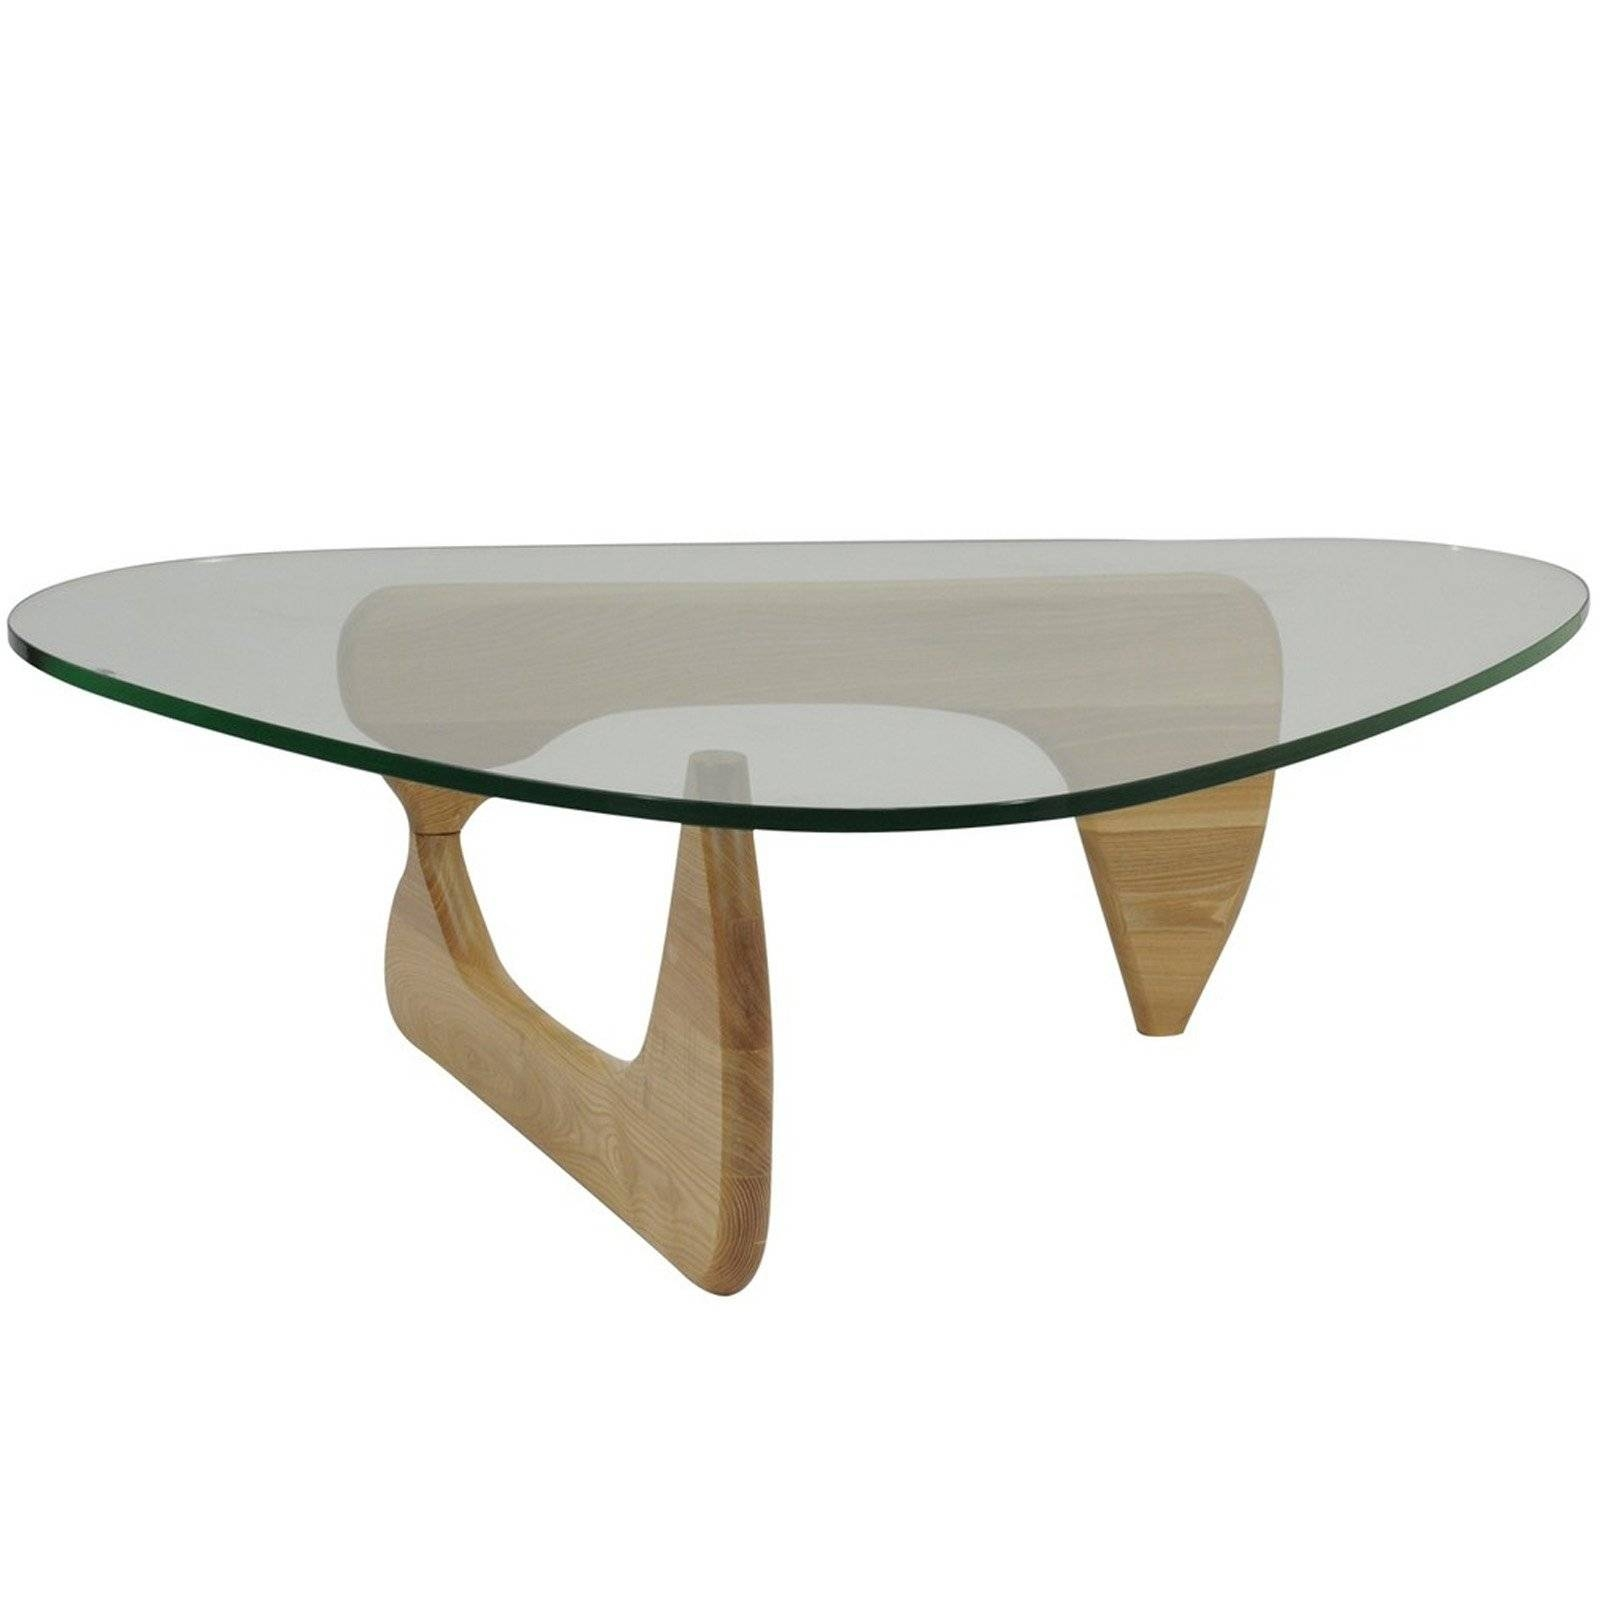 Glass Coffee Tables: Charming Glass Top Coffee Table Decorating throughout Glass Topped Coffee Tables (Image 5 of 15)